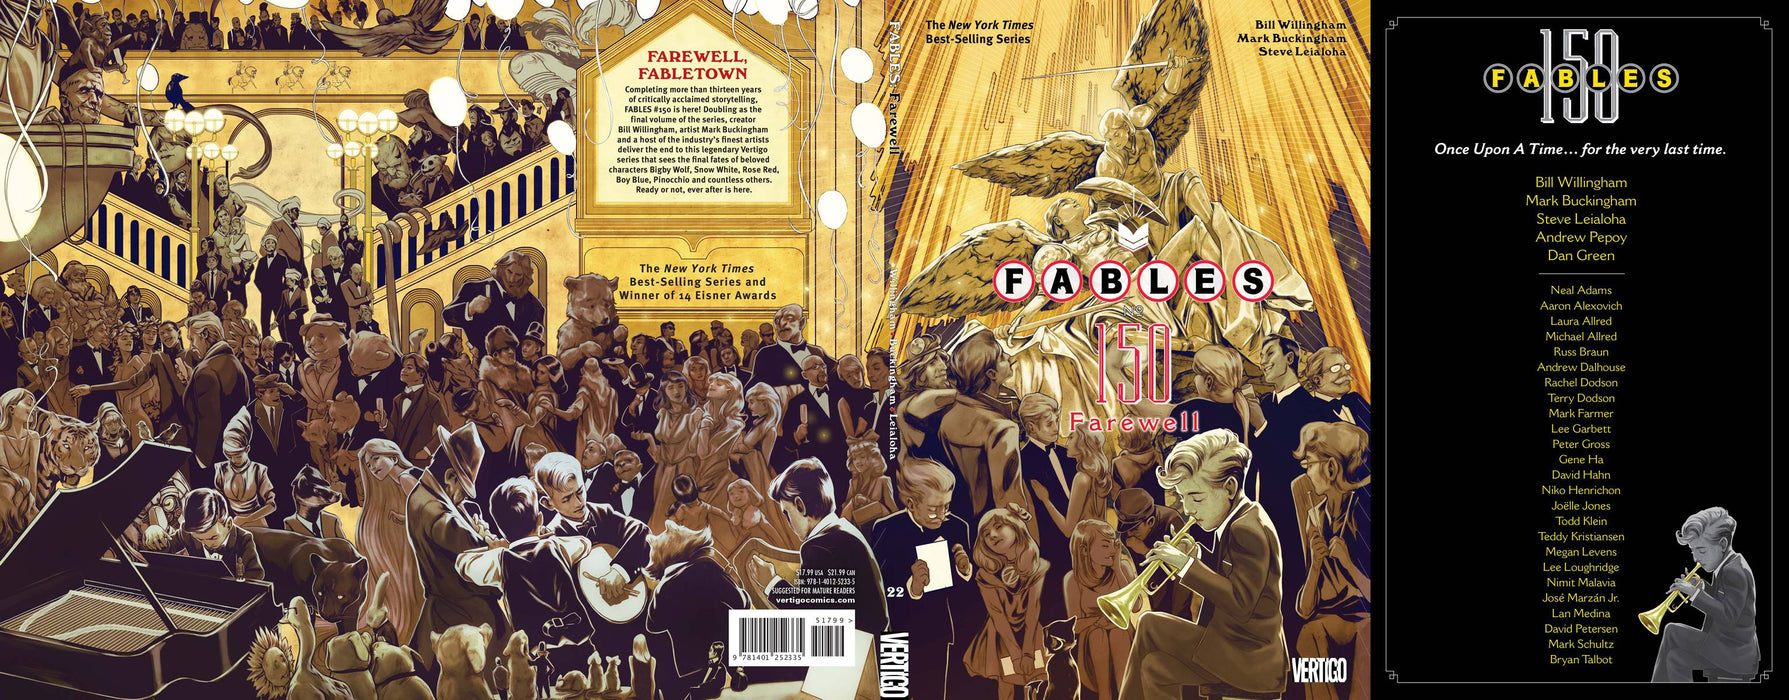 Fables Vol 22 Farewell